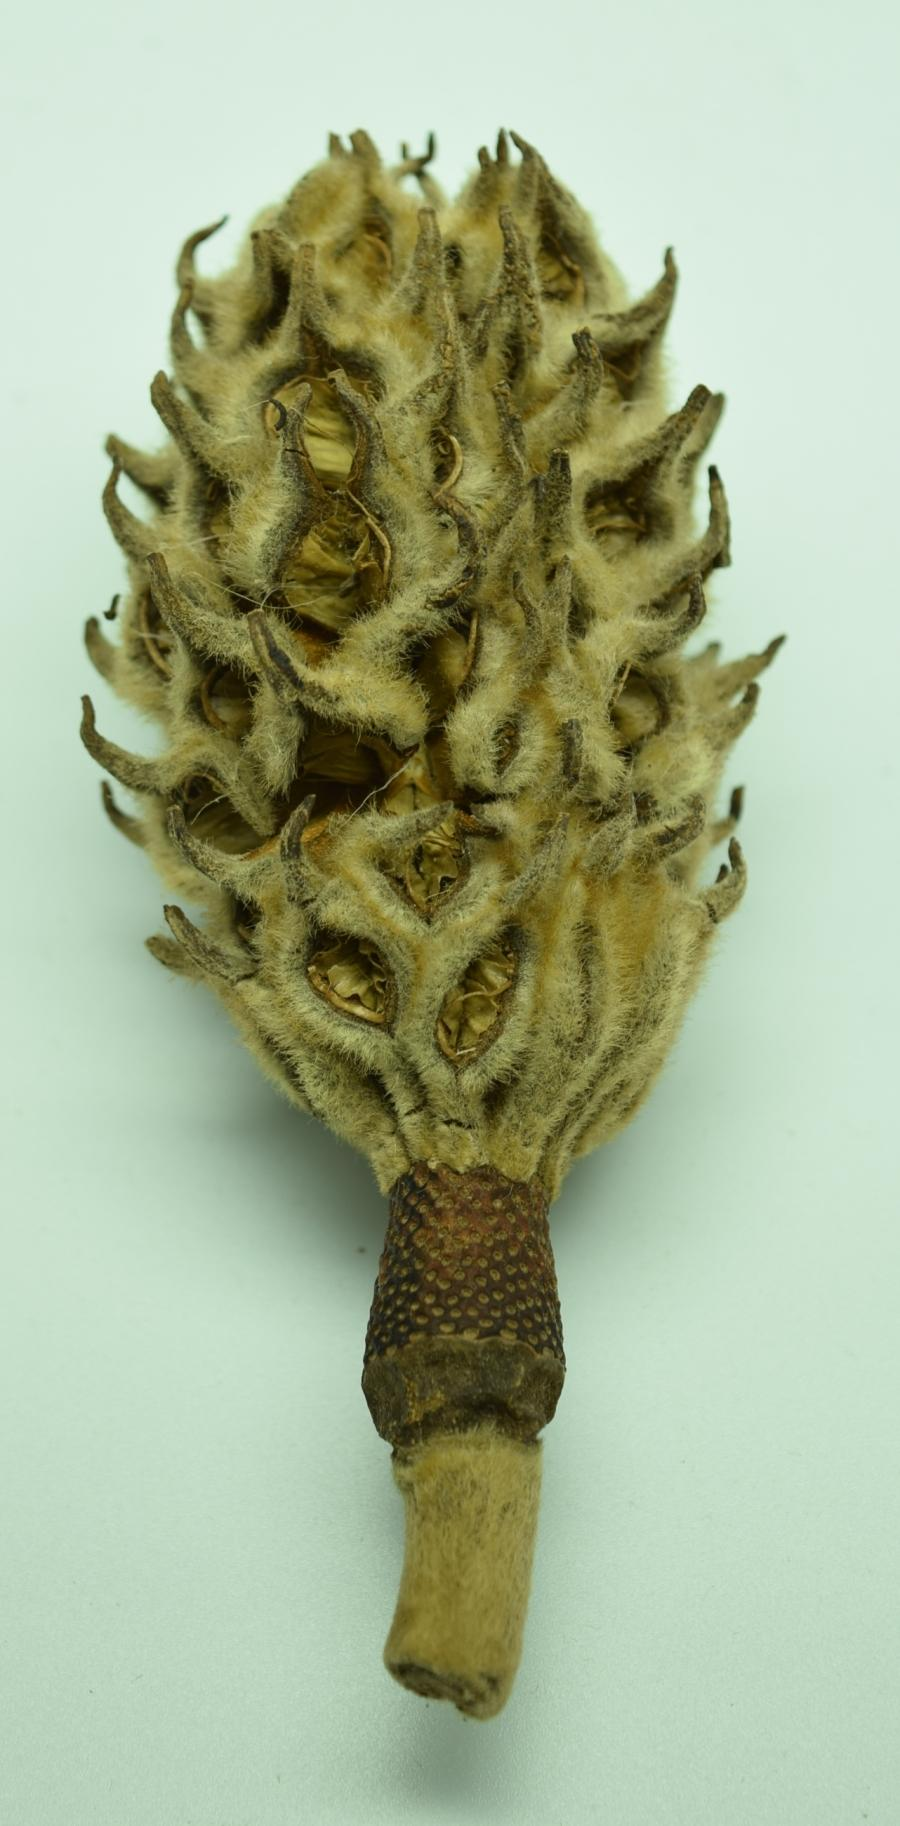 Magnolia seed pod pictured vertically.